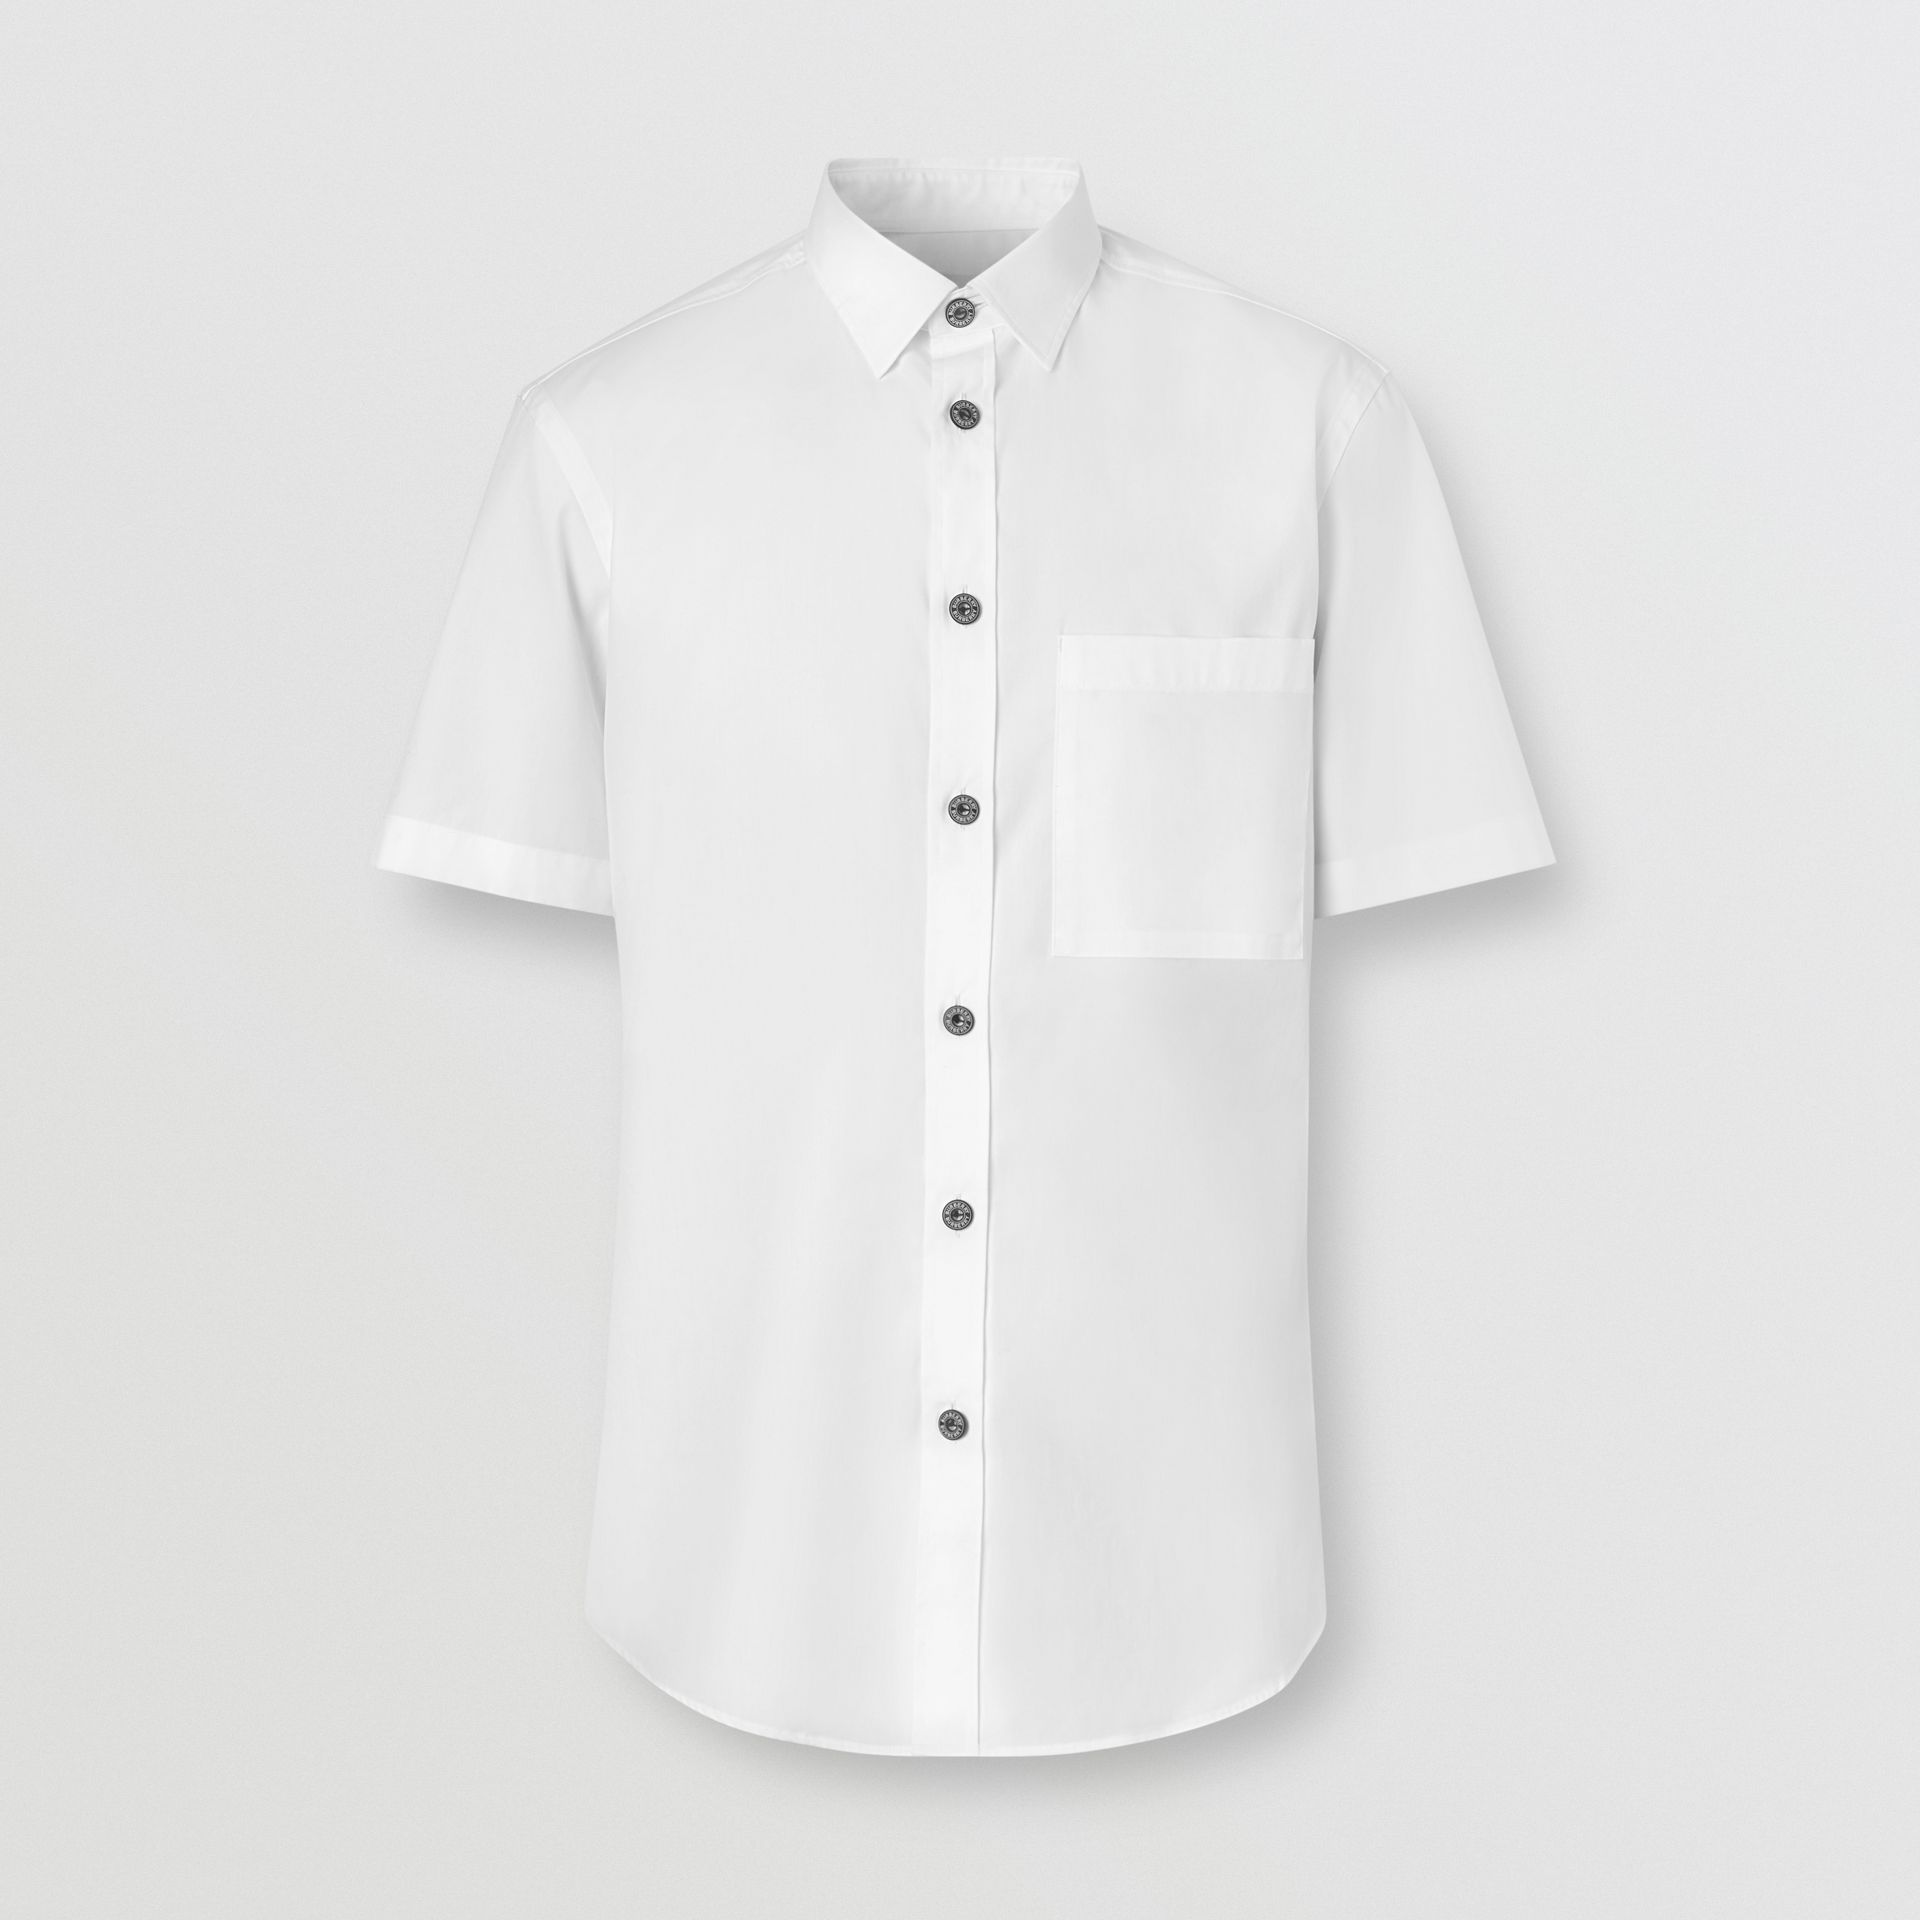 Short-sleeve Slim Fit Stretch Cotton Poplin Shirt in White - Men | Burberry - gallery image 3